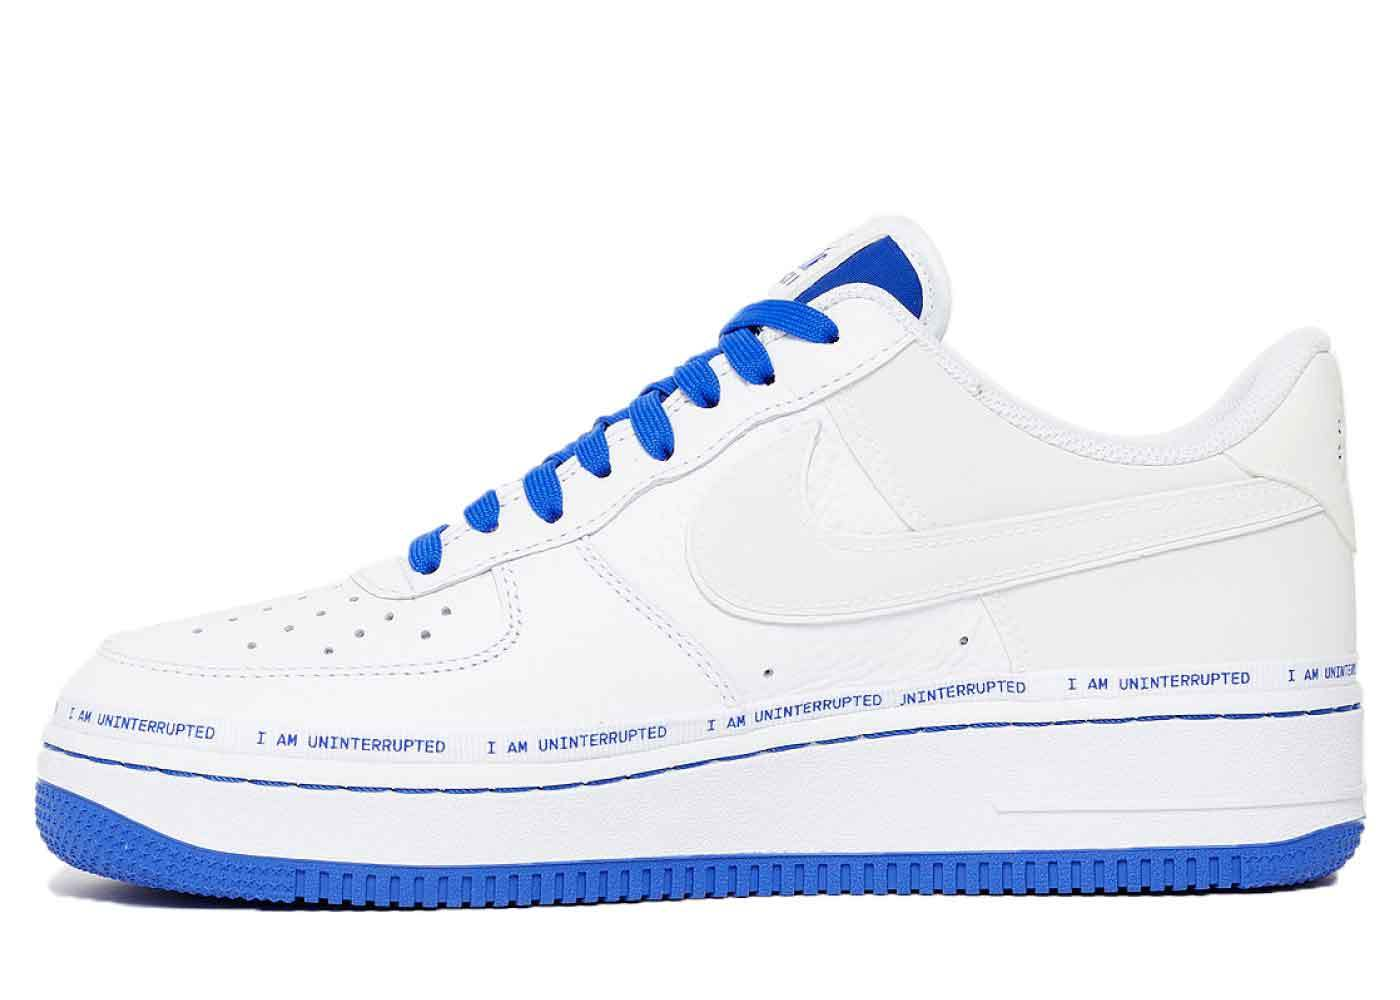 Nike Air Force 1 Low Uninterrupted More Thanの写真